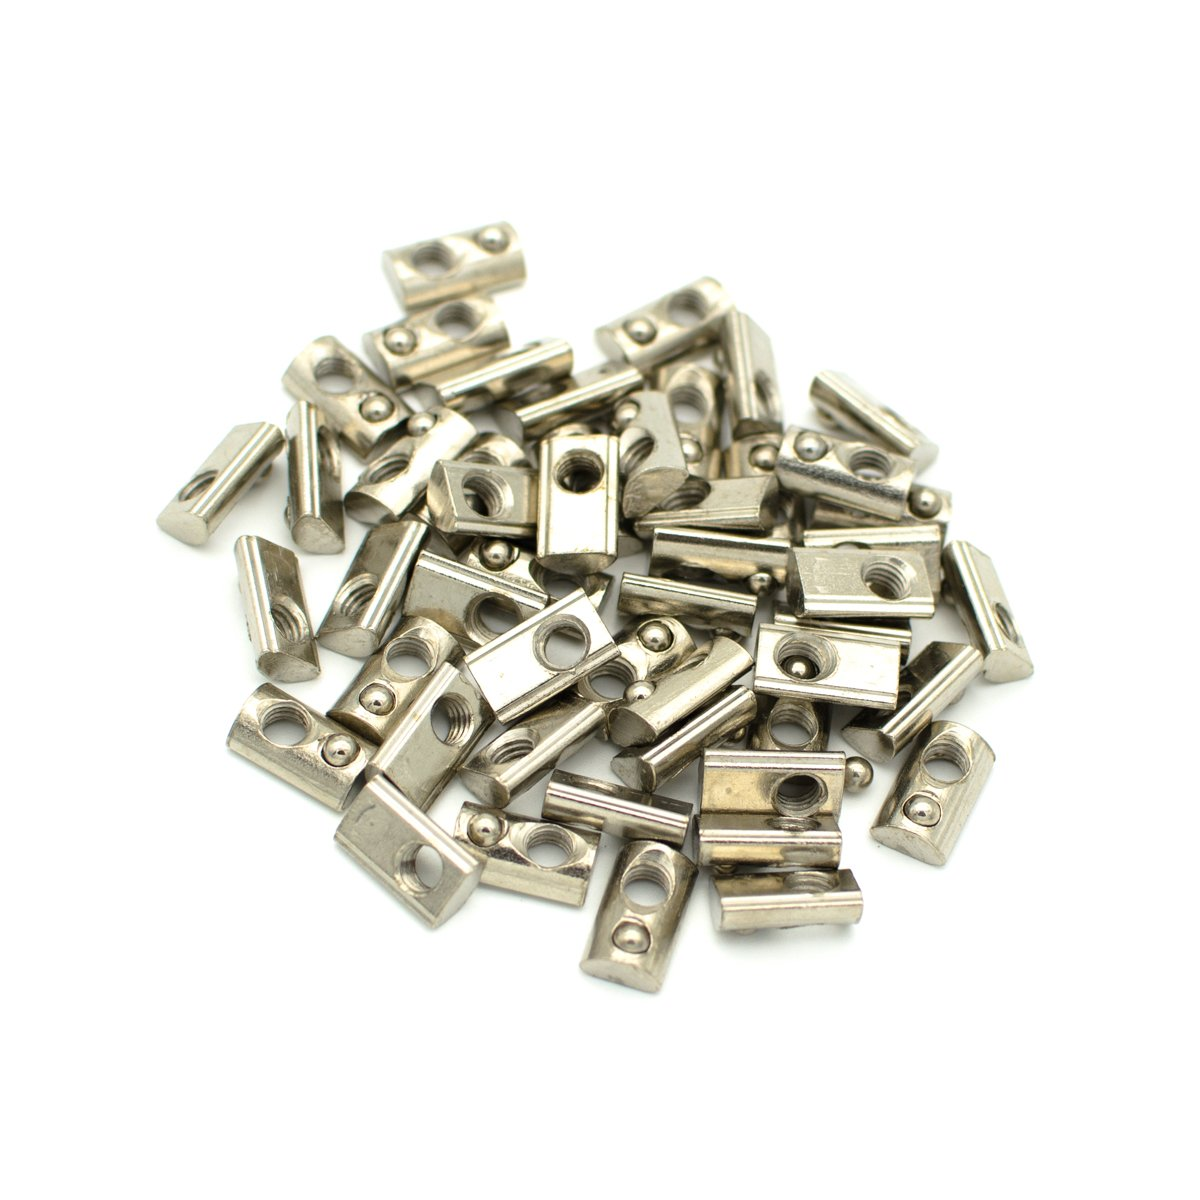 Roll in Spring Loaded T Nut for 20mm Series Aluminum Extrusions Pack of 50 (M5) by TOPINSTOCK (Image #6)